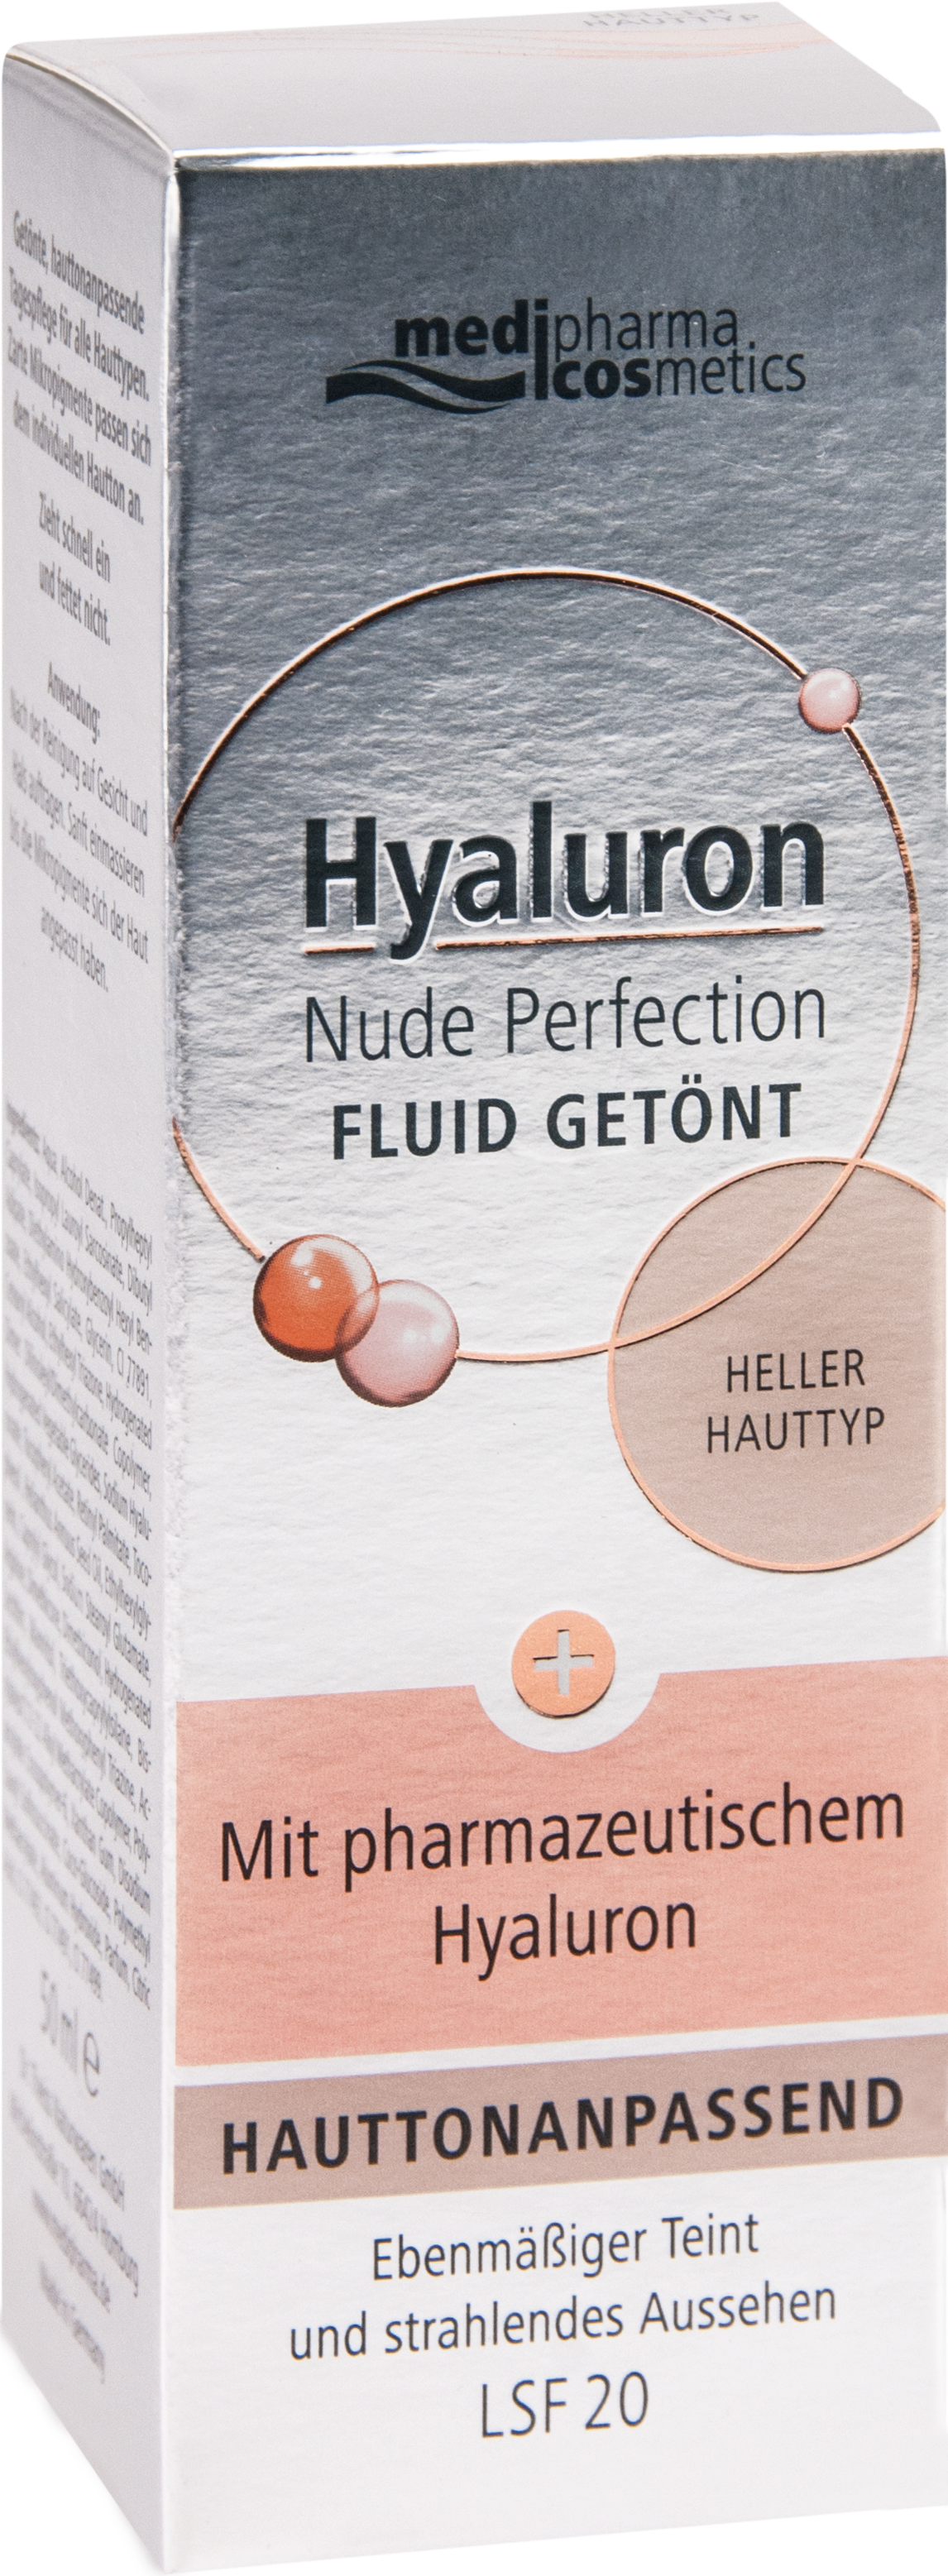 Hyaluron Nude Perfection Fluid getönt heller HTL20